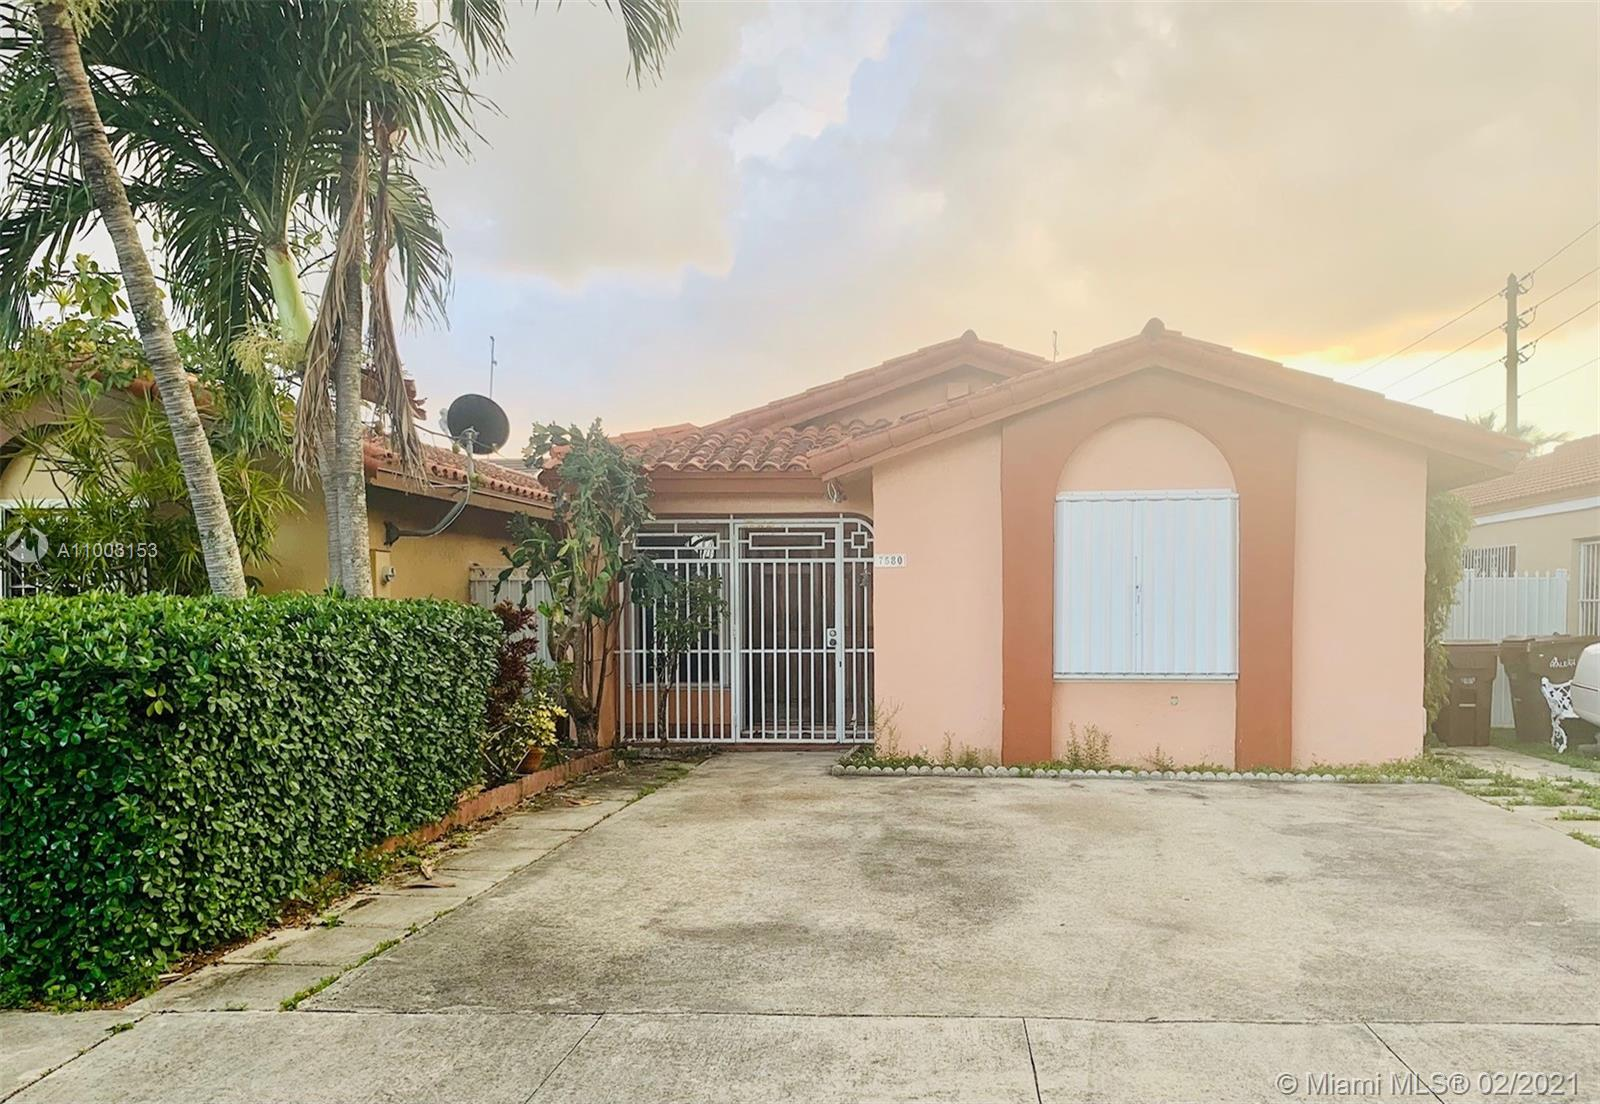 Details for 7580 29th Ave, Hialeah, FL 33018